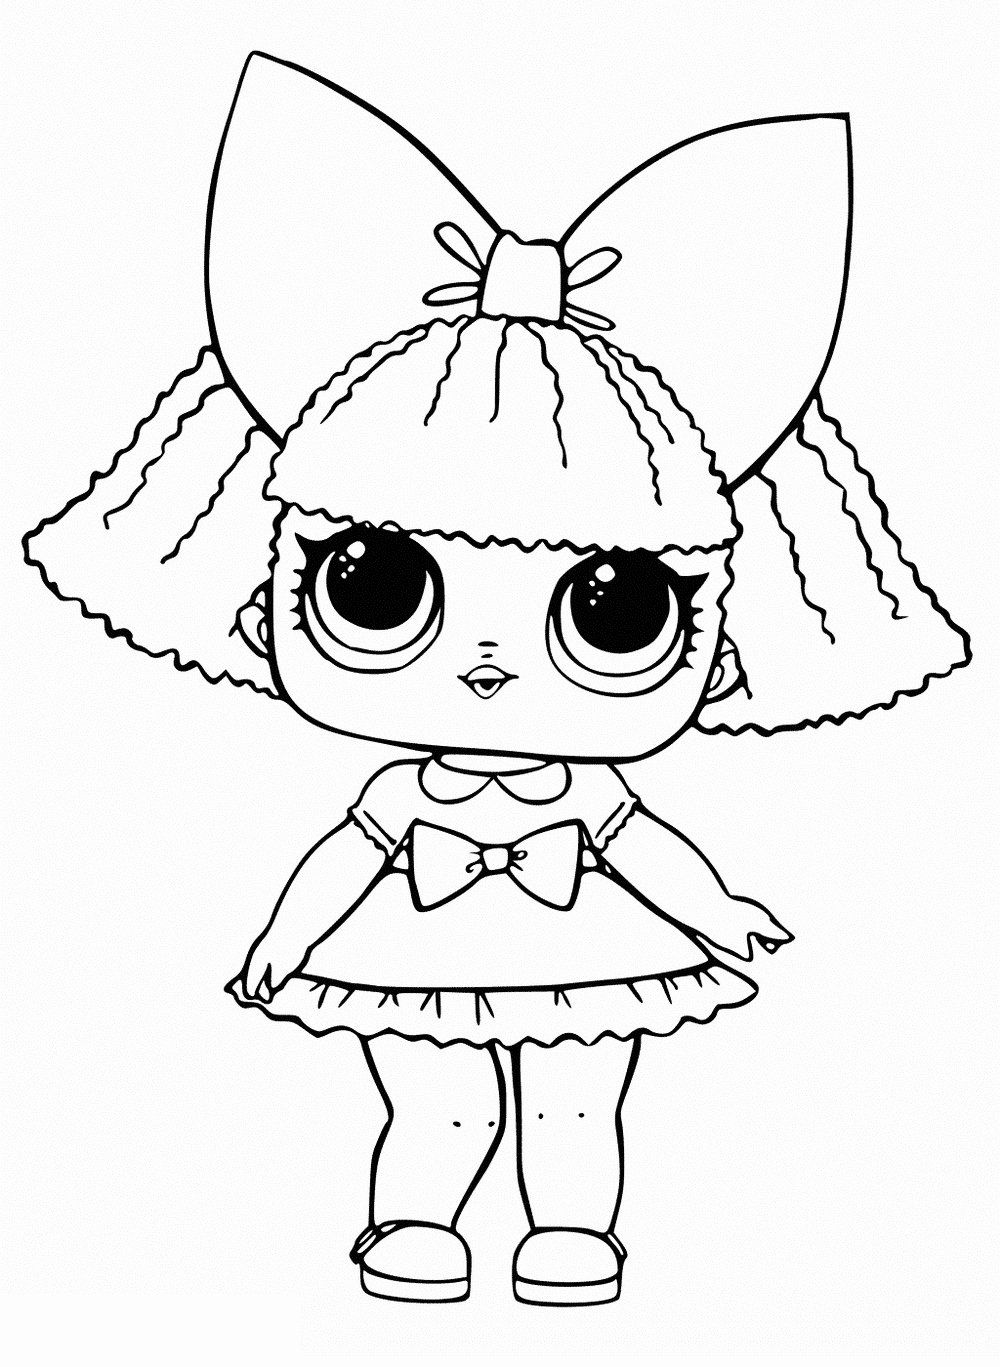 Lol Dolls Coloring Page Beautiful Coloring Pages Of Lol Surprise Dolls 80 Pieces Of Black In 2020 Baby Coloring Pages Puppy Coloring Pages Lol Dolls